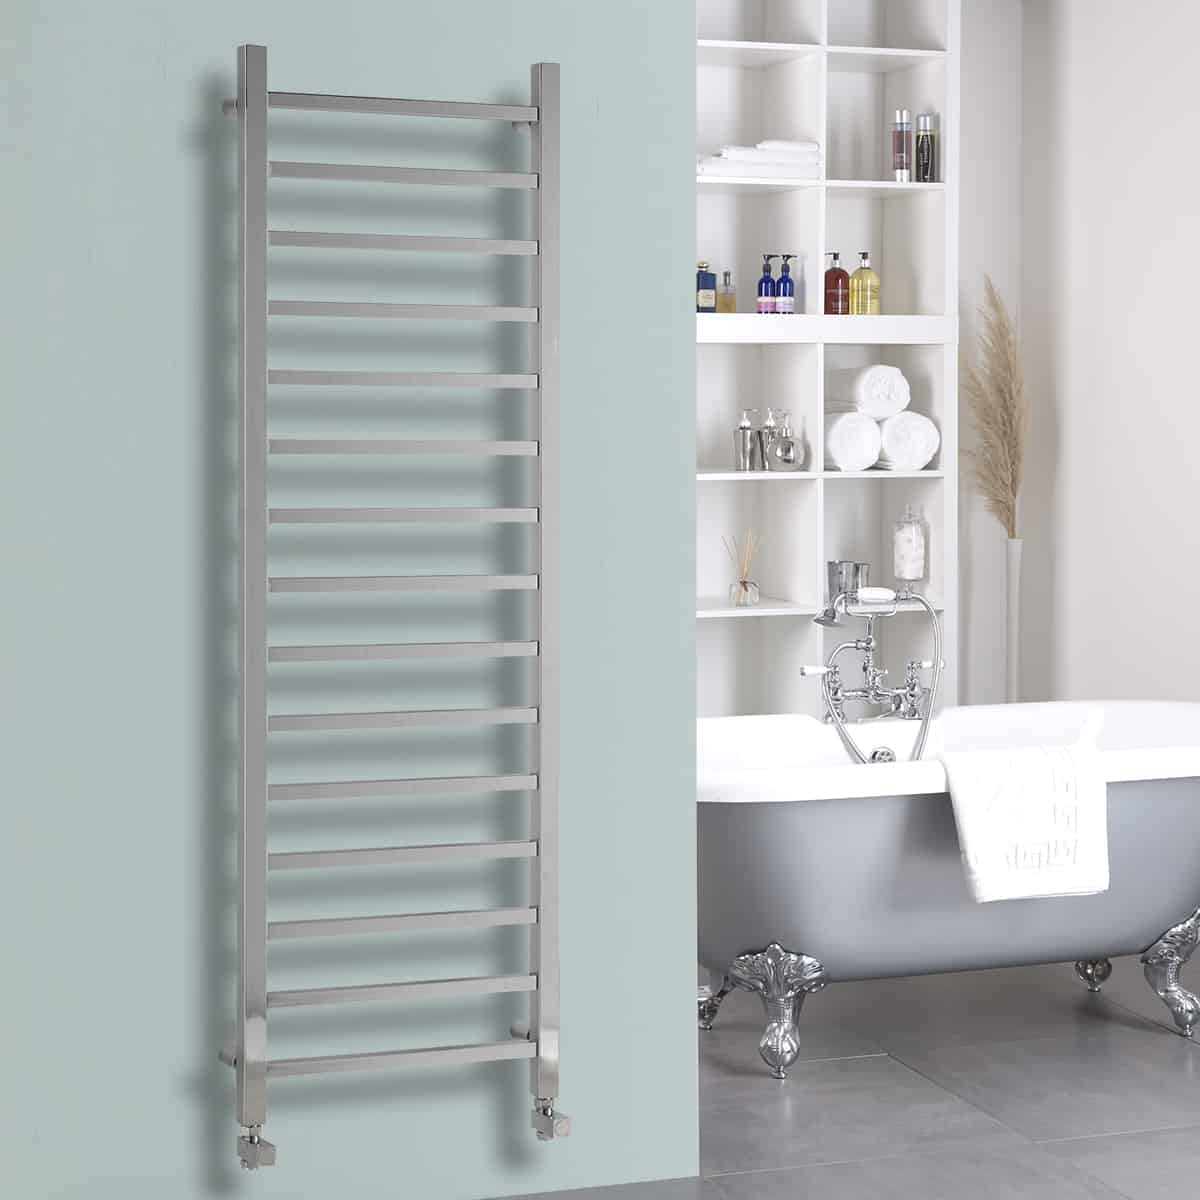 Oil filled electric towel rails for bathrooms - Square Finish Designer Result The Ballaugh Designer Square Tube Electric Towel Rail